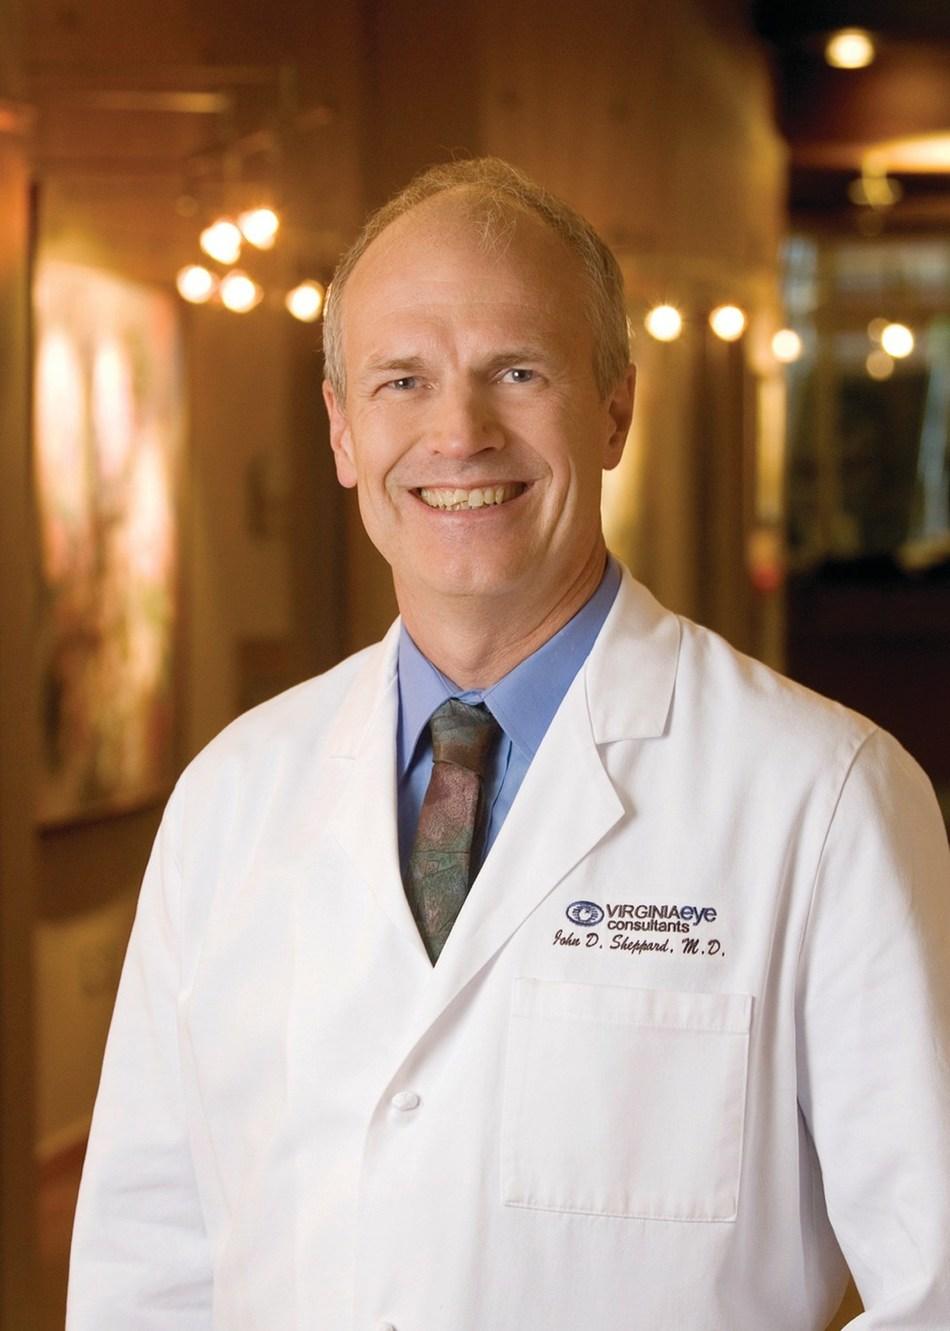 John D. Sheppard, M.D., M.M.Sc., president of Virginia Eye Consultants